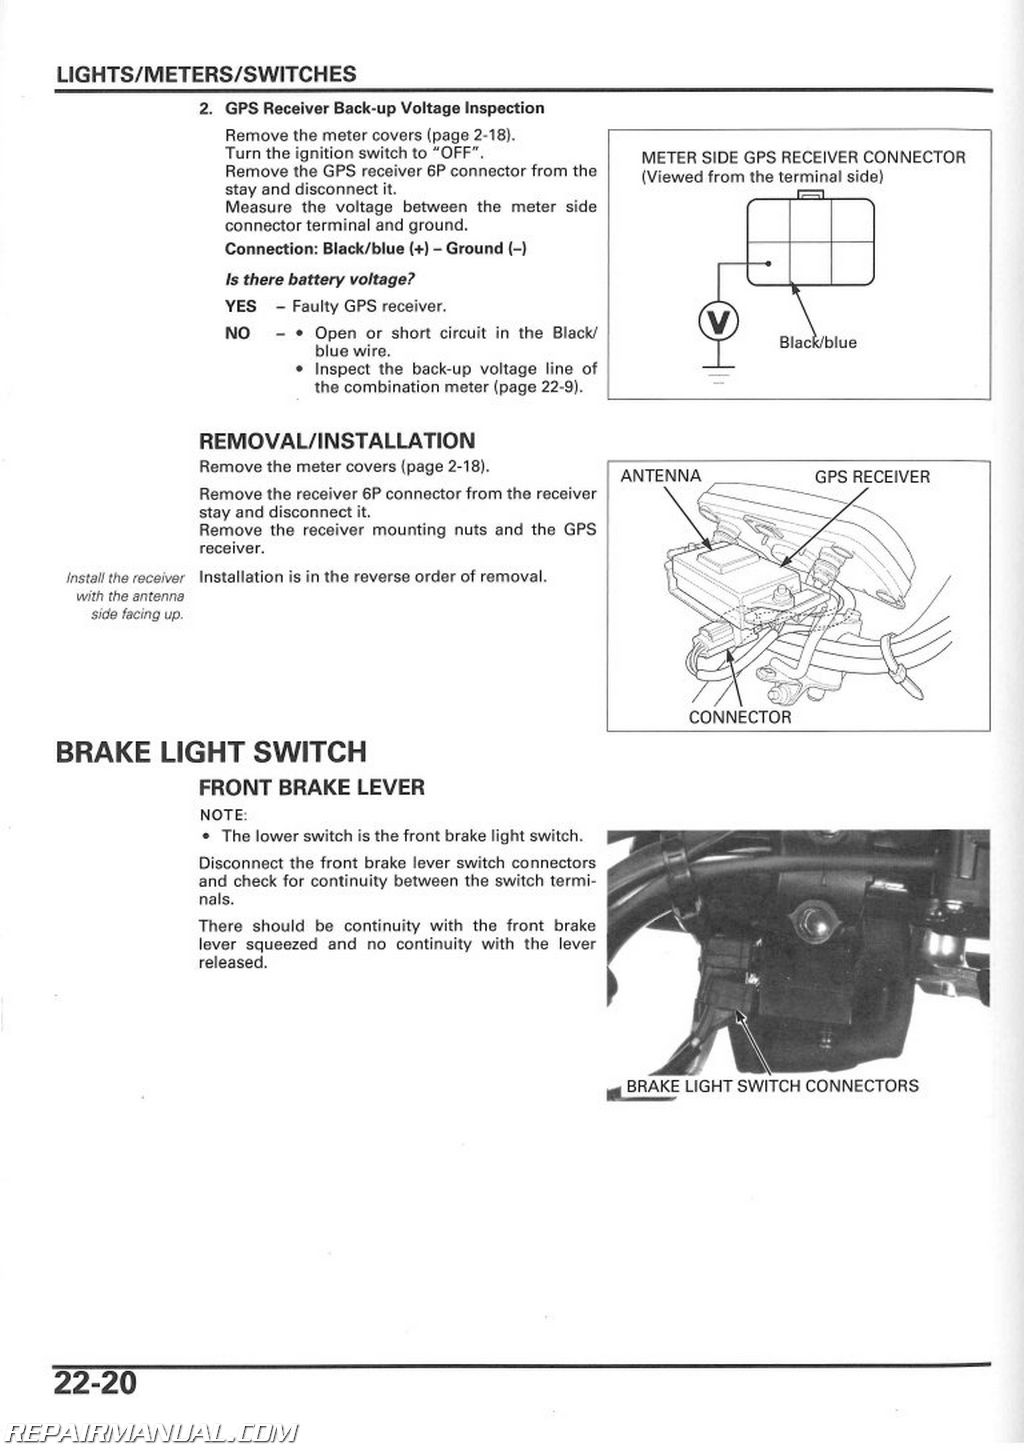 Honda trx rincon service manual by